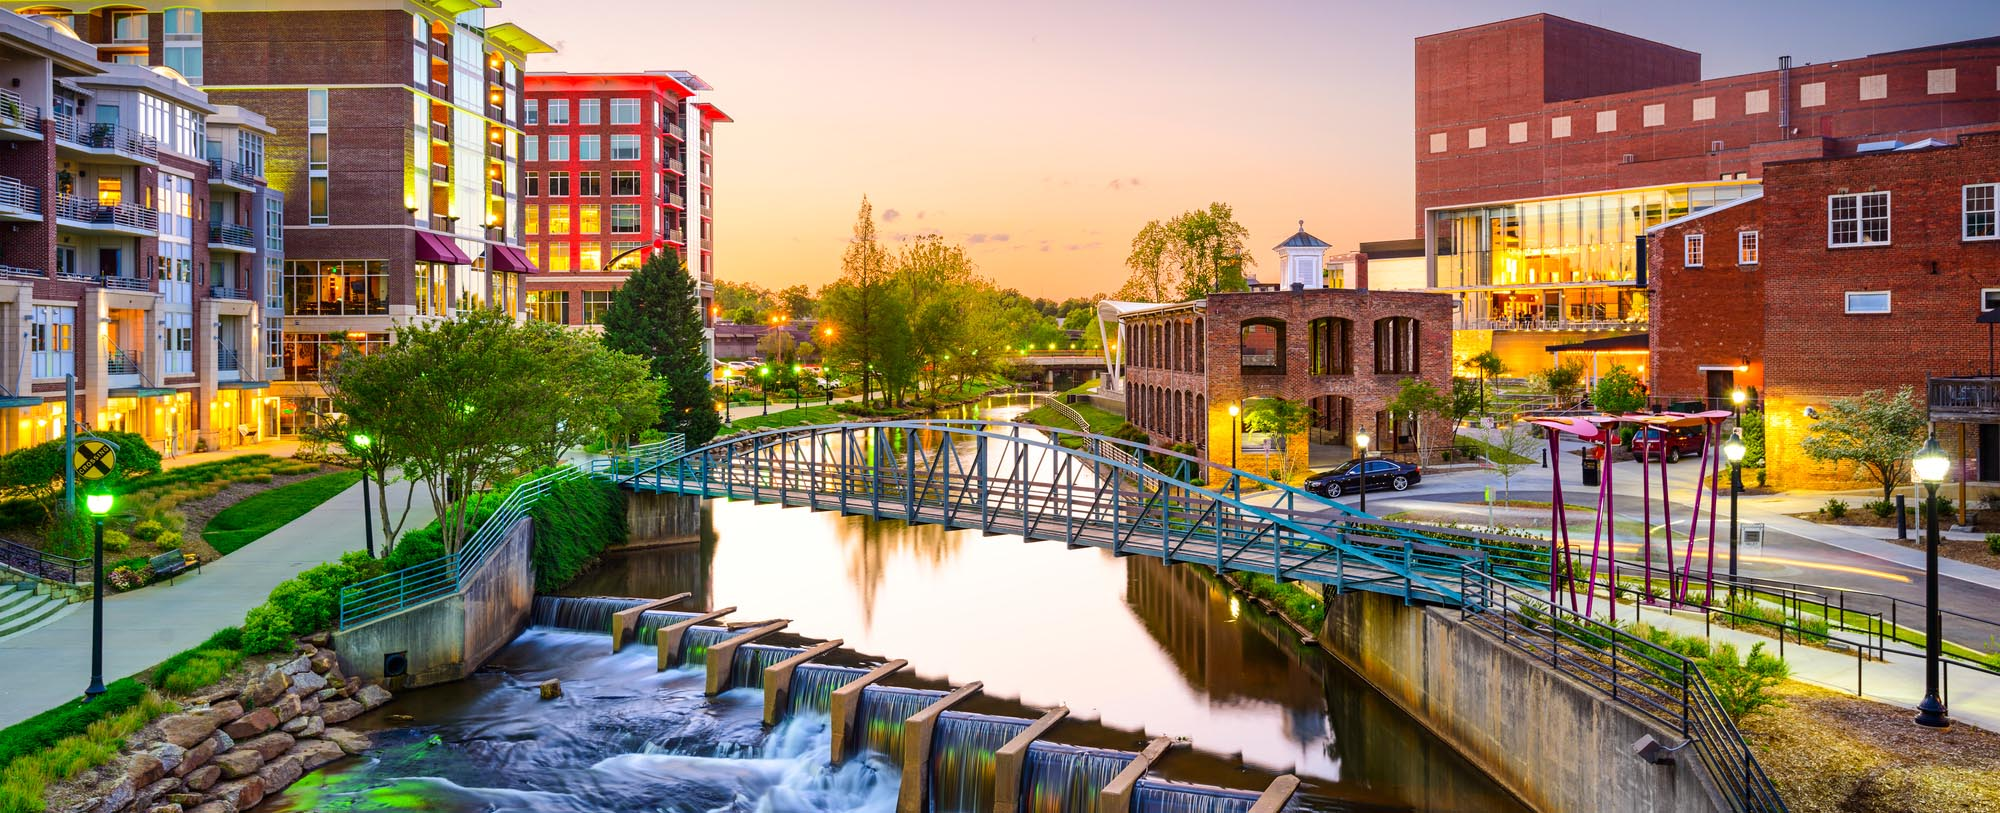 Downtown Greenville with a bridge and water underneath it